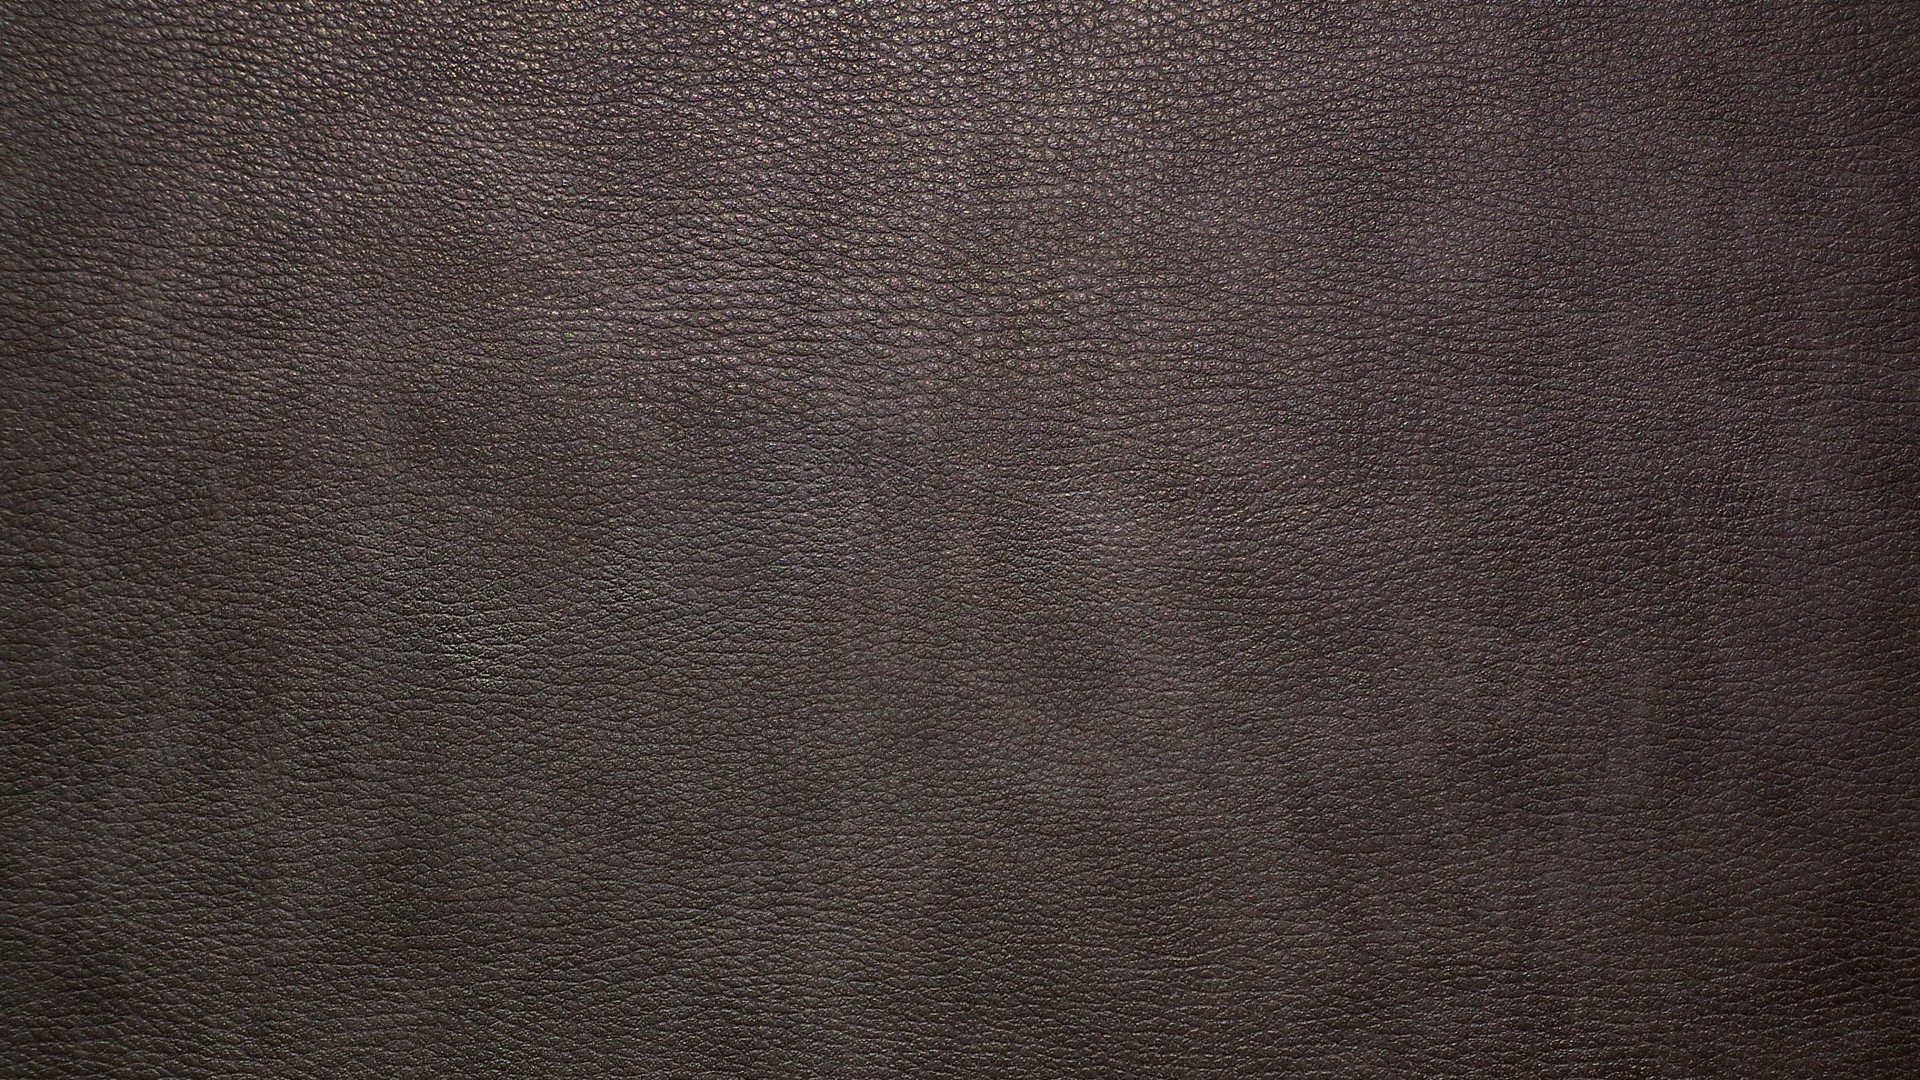 Brown leather wallpapers and images – wallpapers, pictures, photos